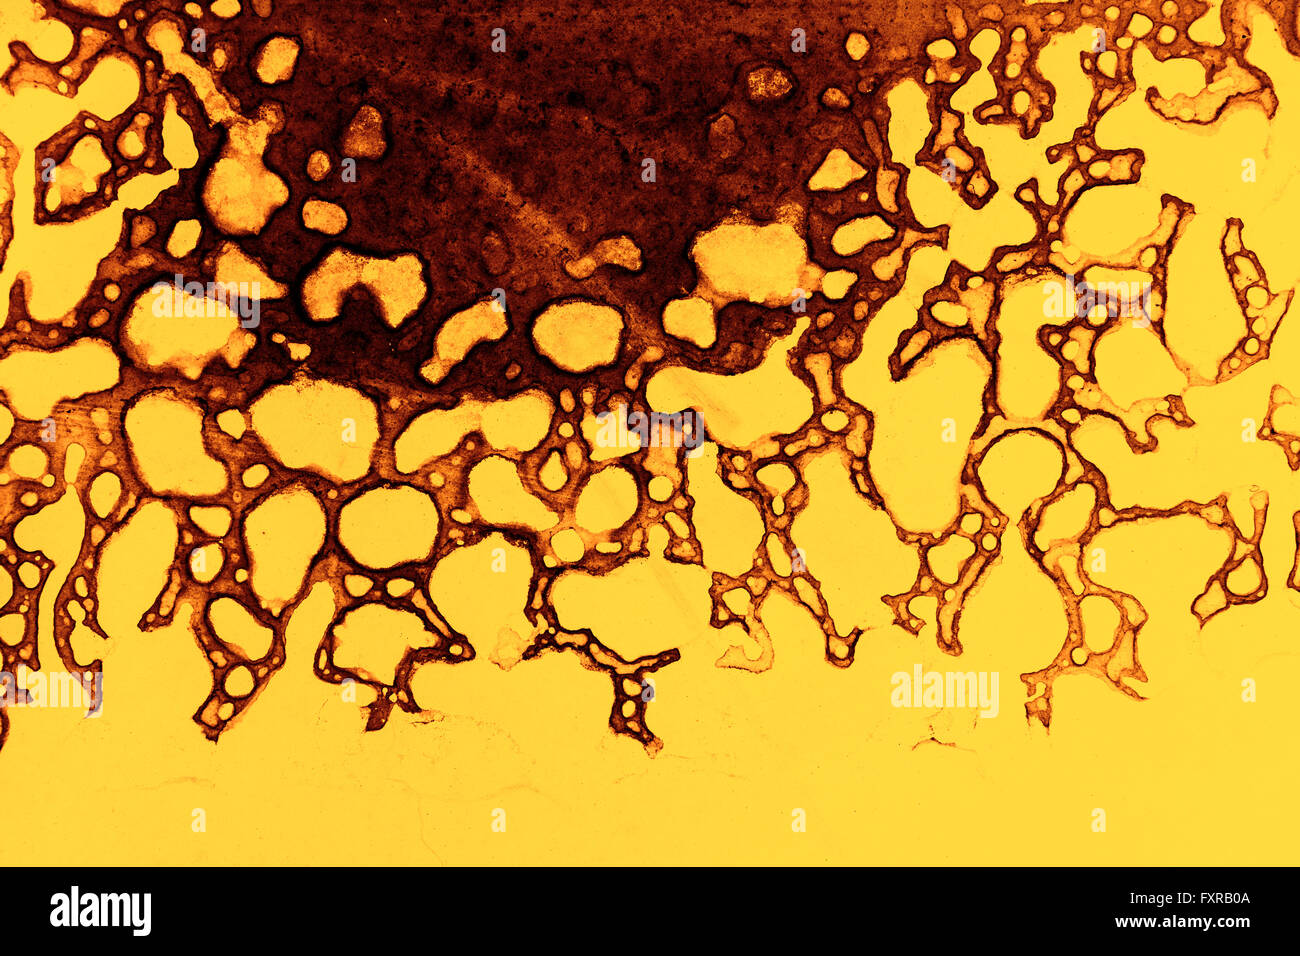 Abstract pattern in yellow and brown - Stock Image